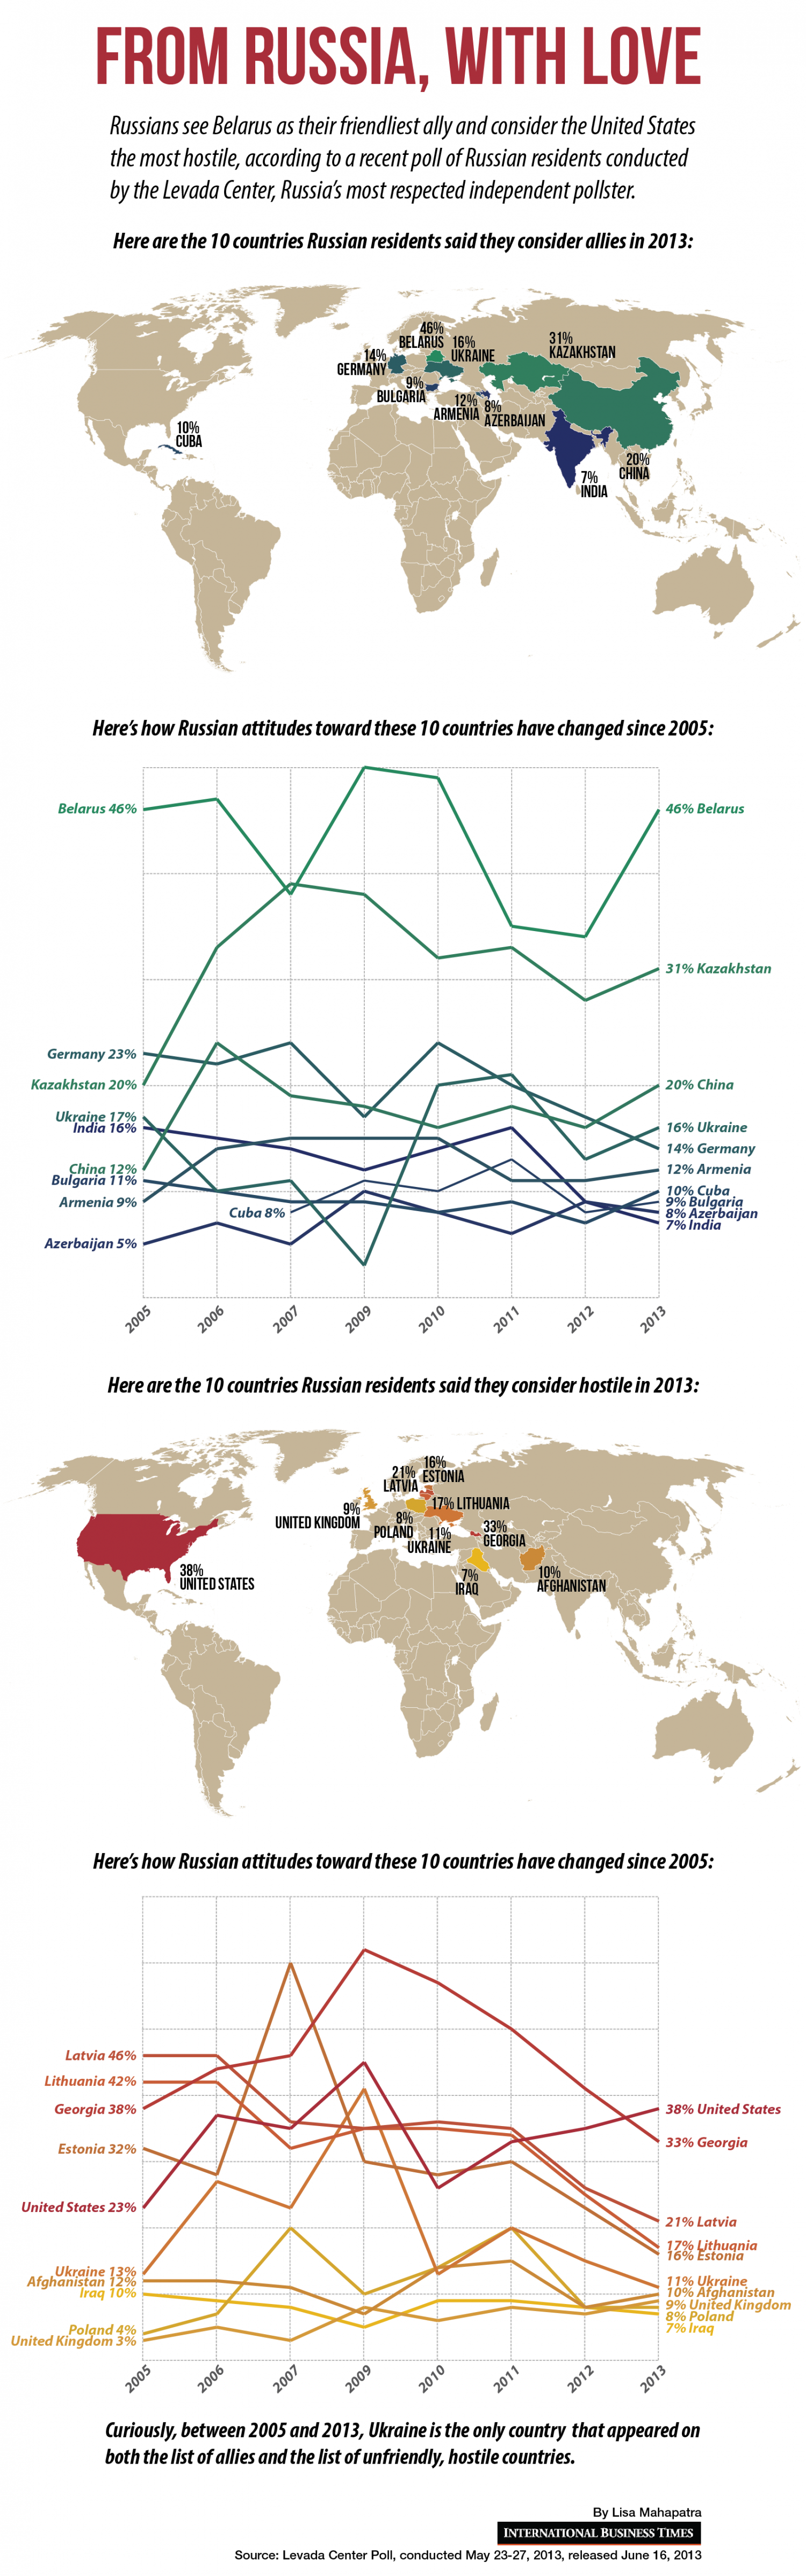 Who Do Russians Consider Allies and Enemies? Infographic